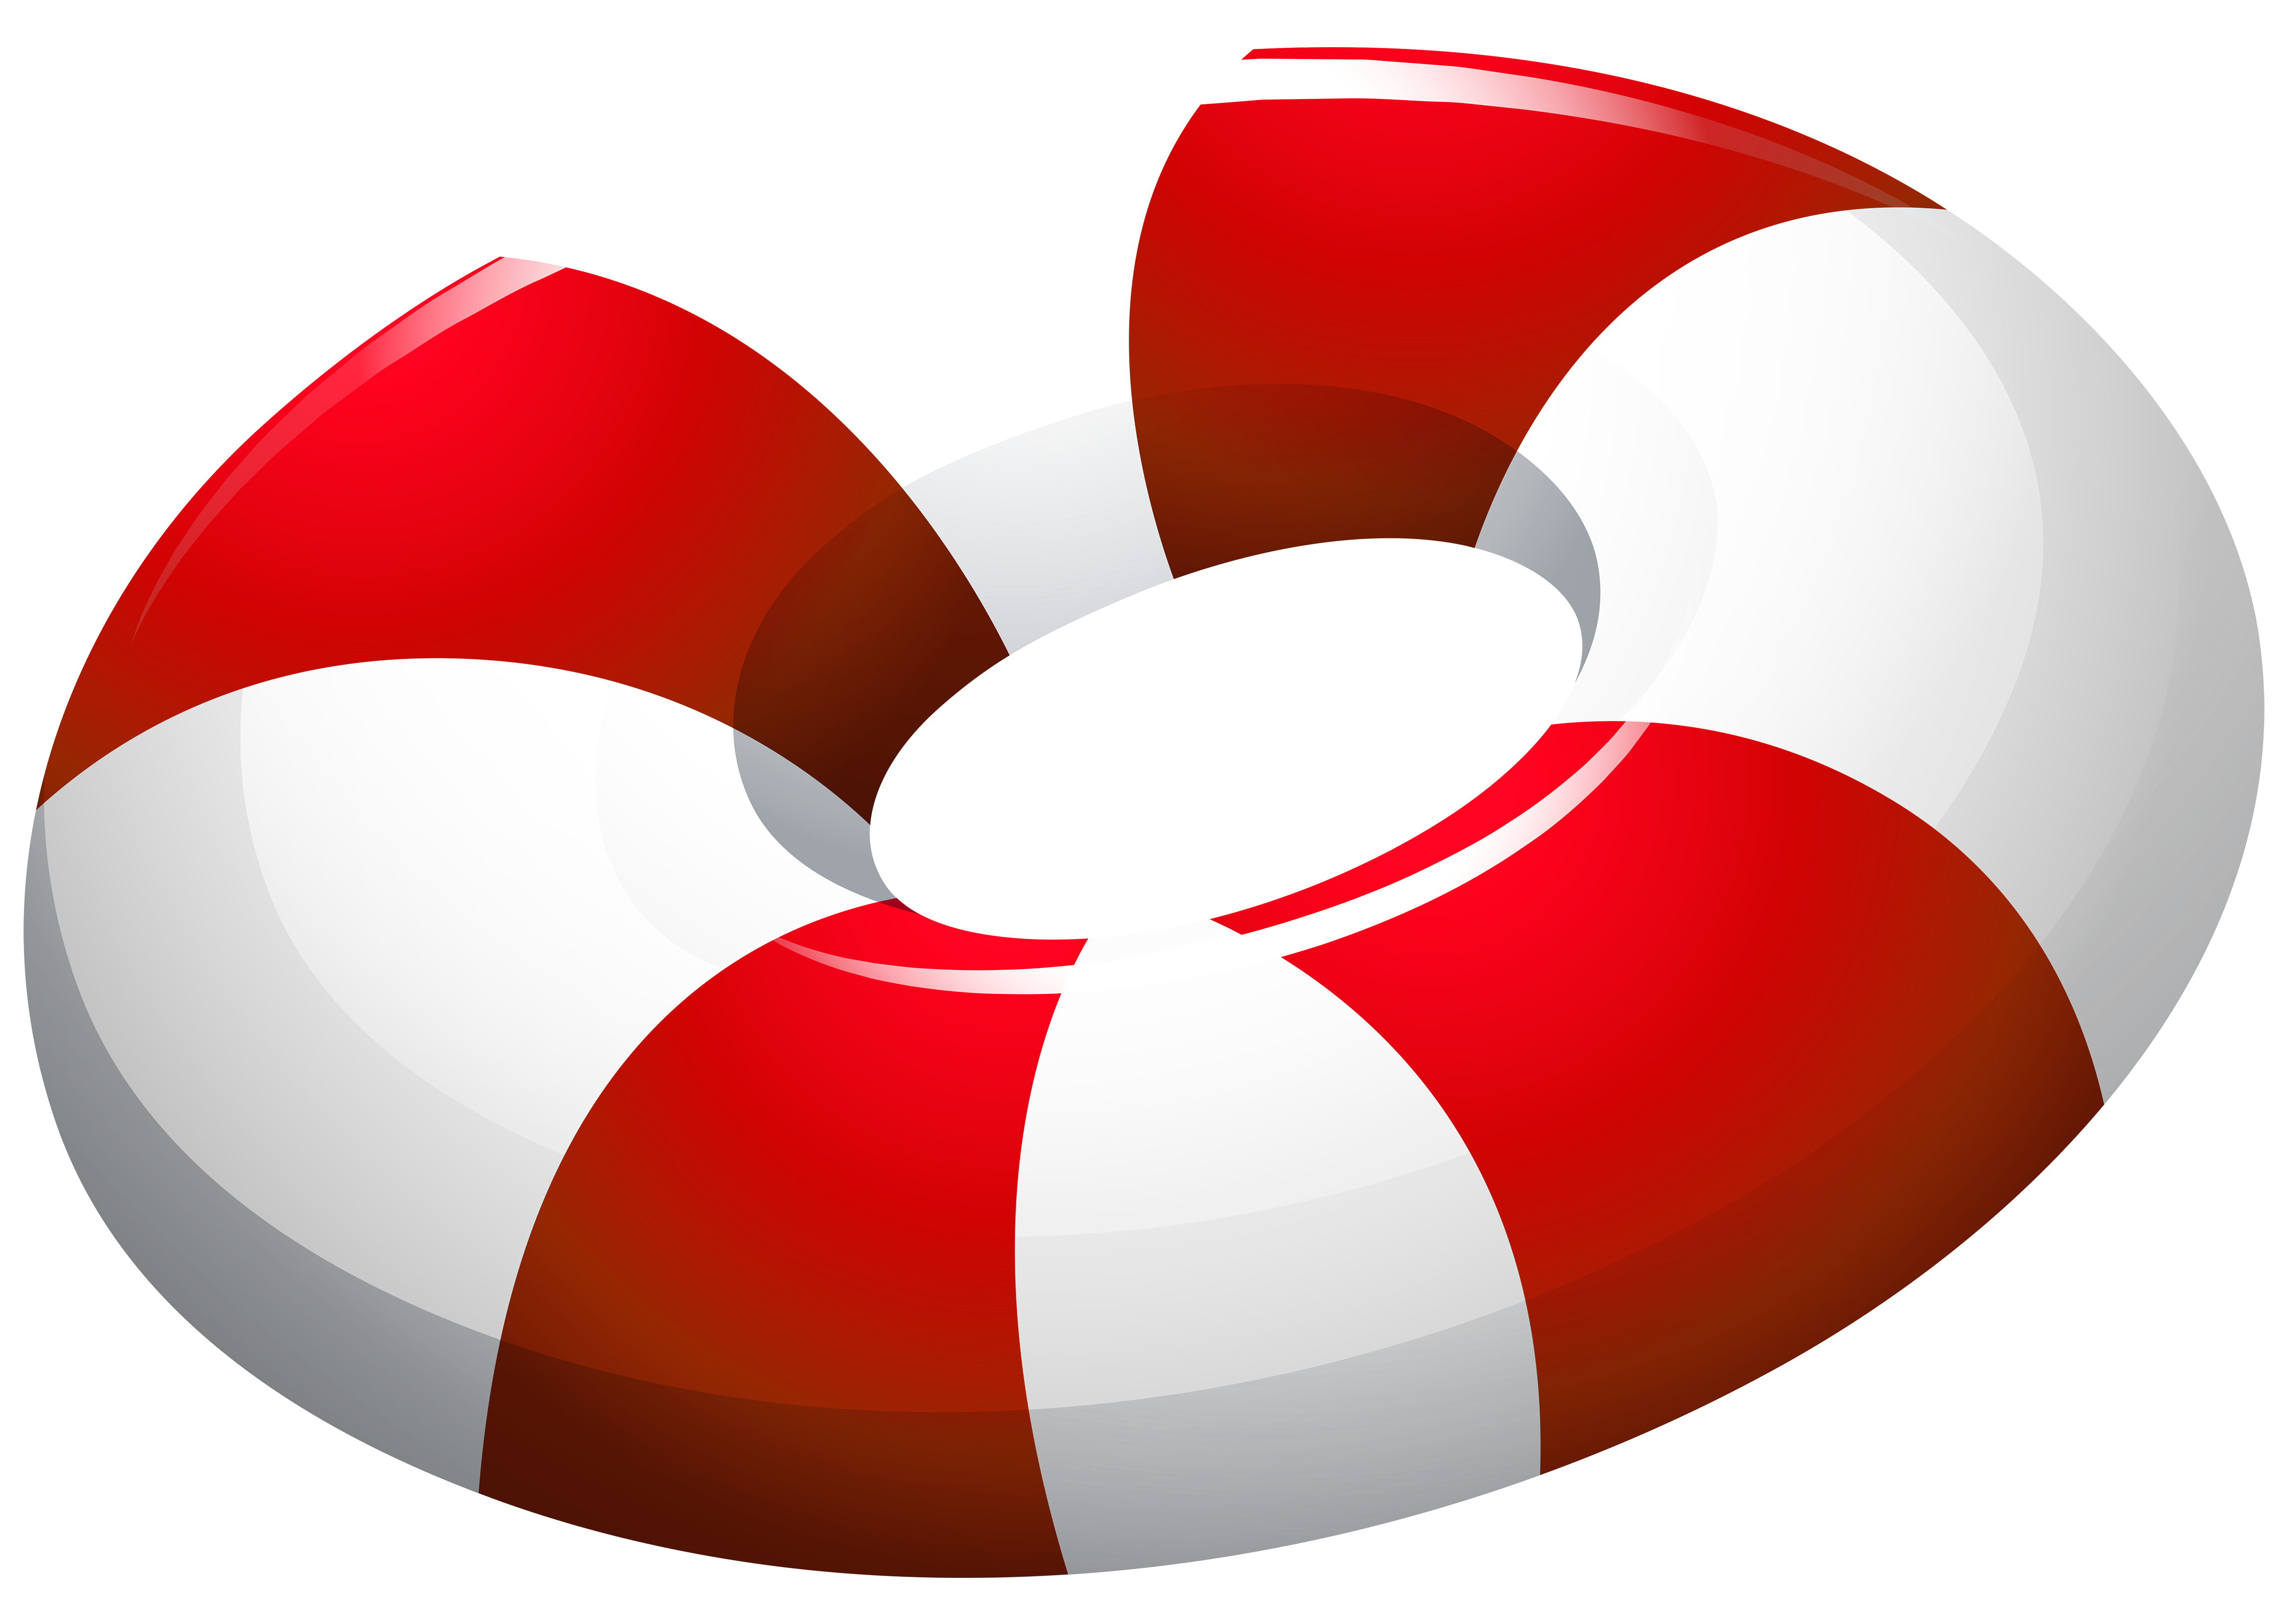 Pool ring clipart.